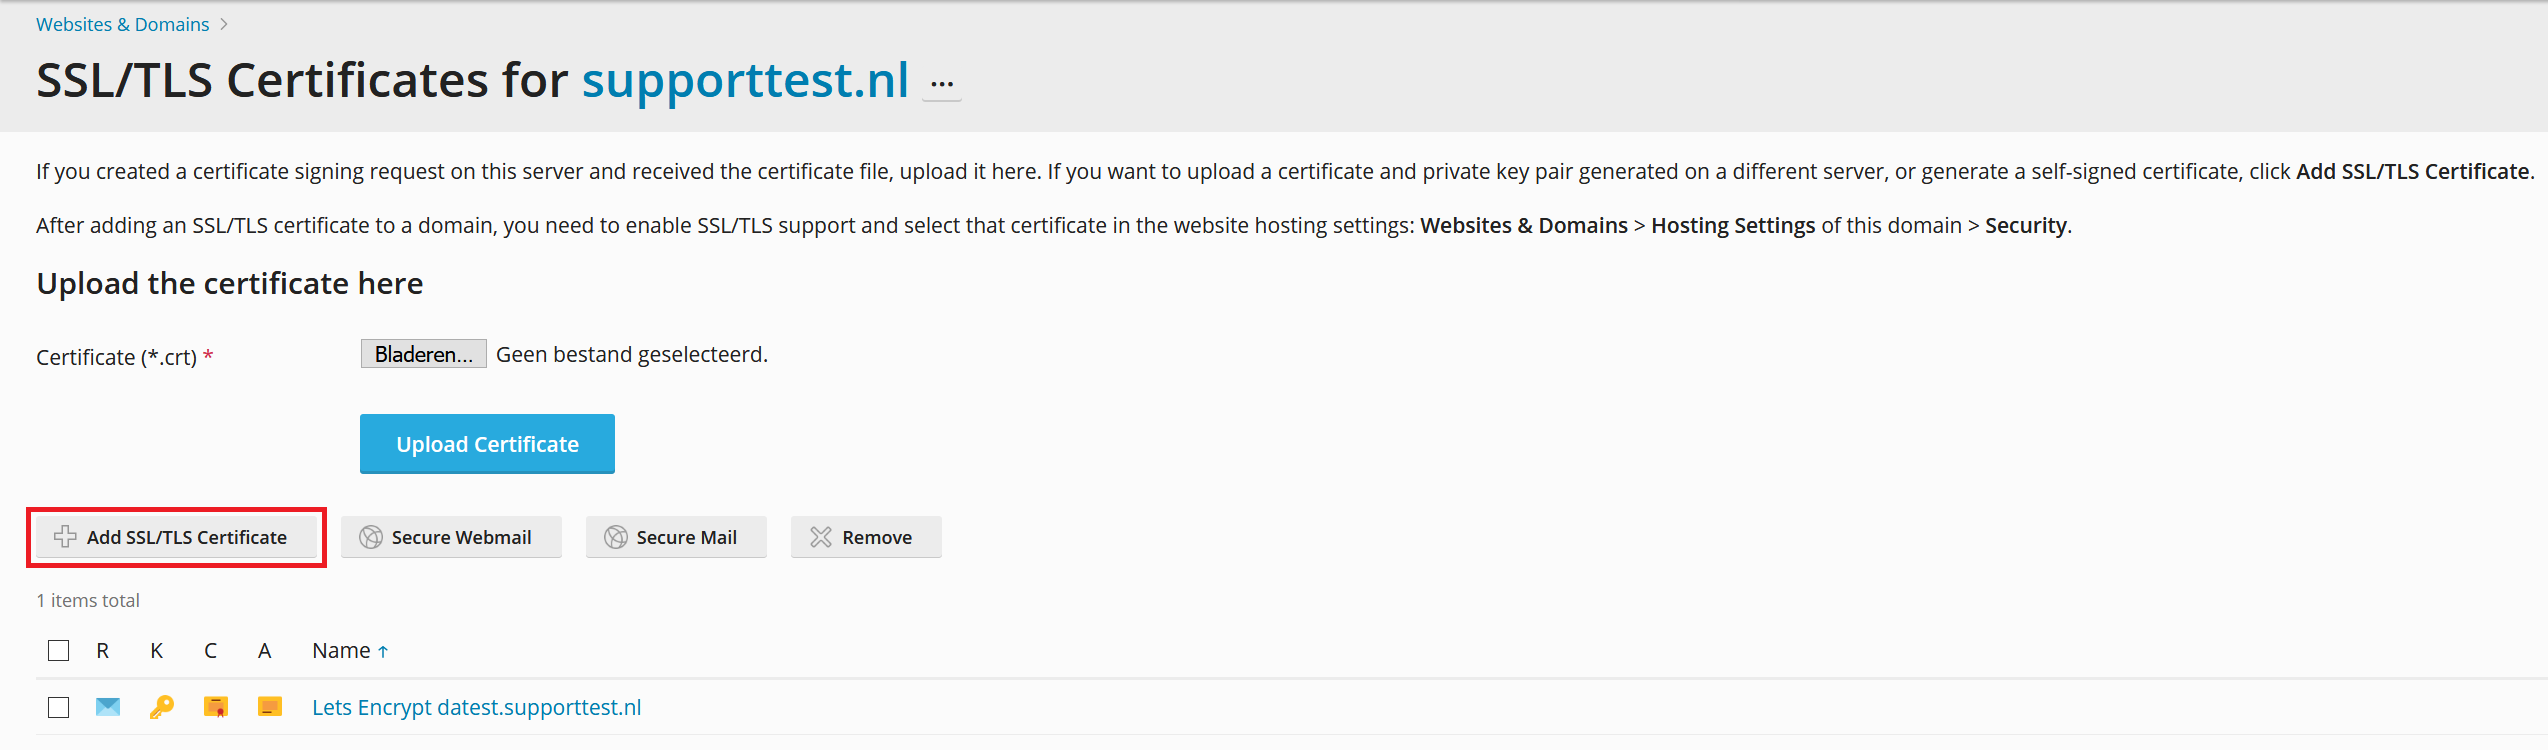 plesk website and domains add ssl certificate